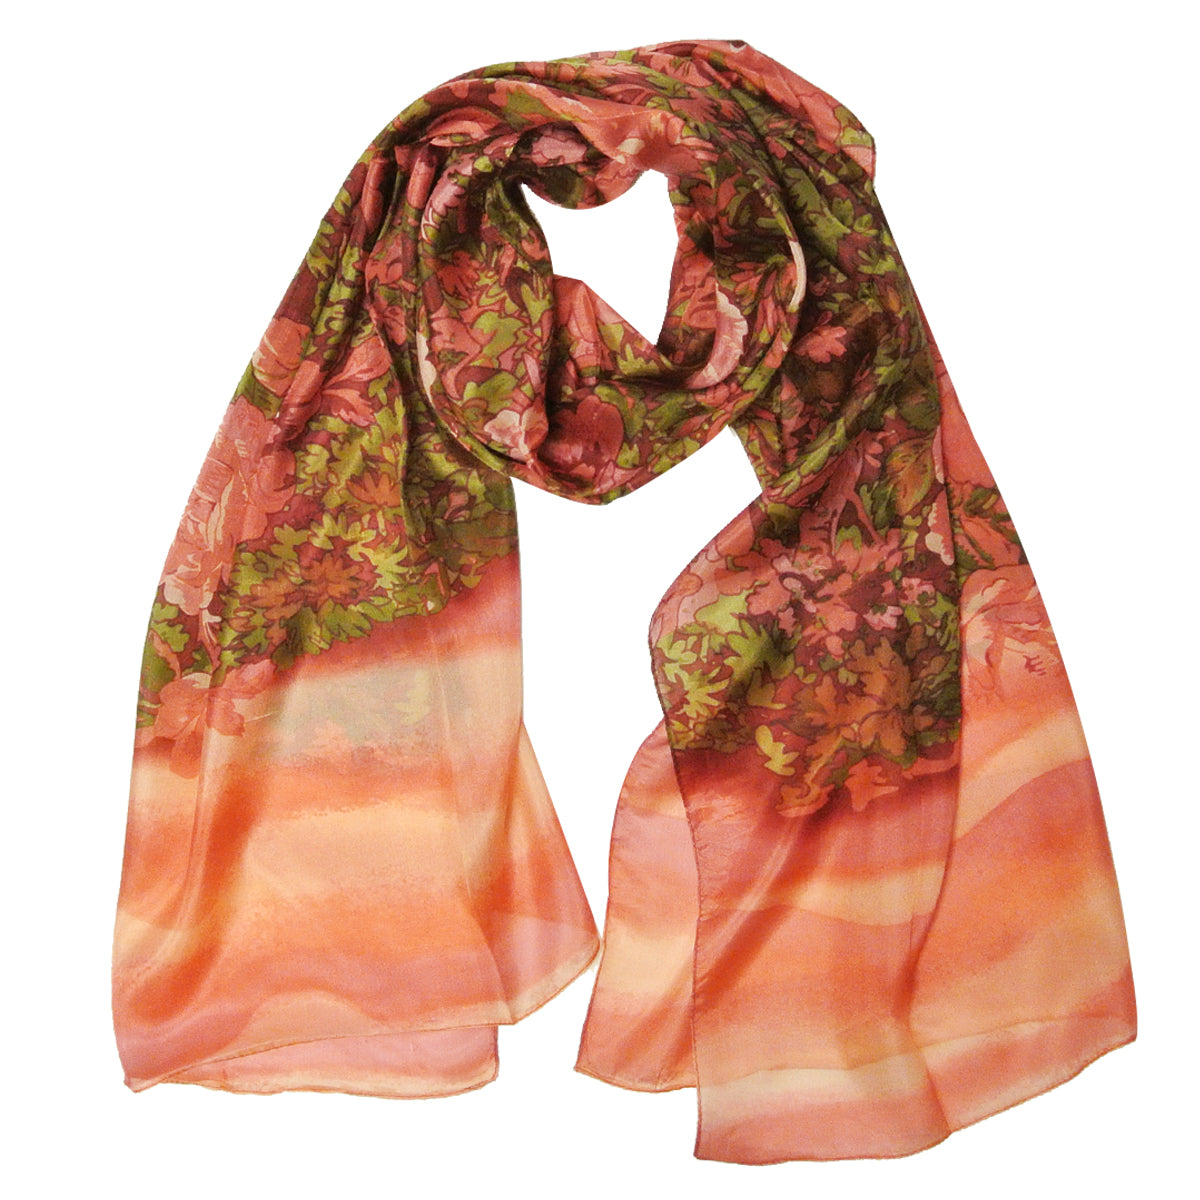 Wrapables Luxurious 100% Charmeuse Silk Long Scarf